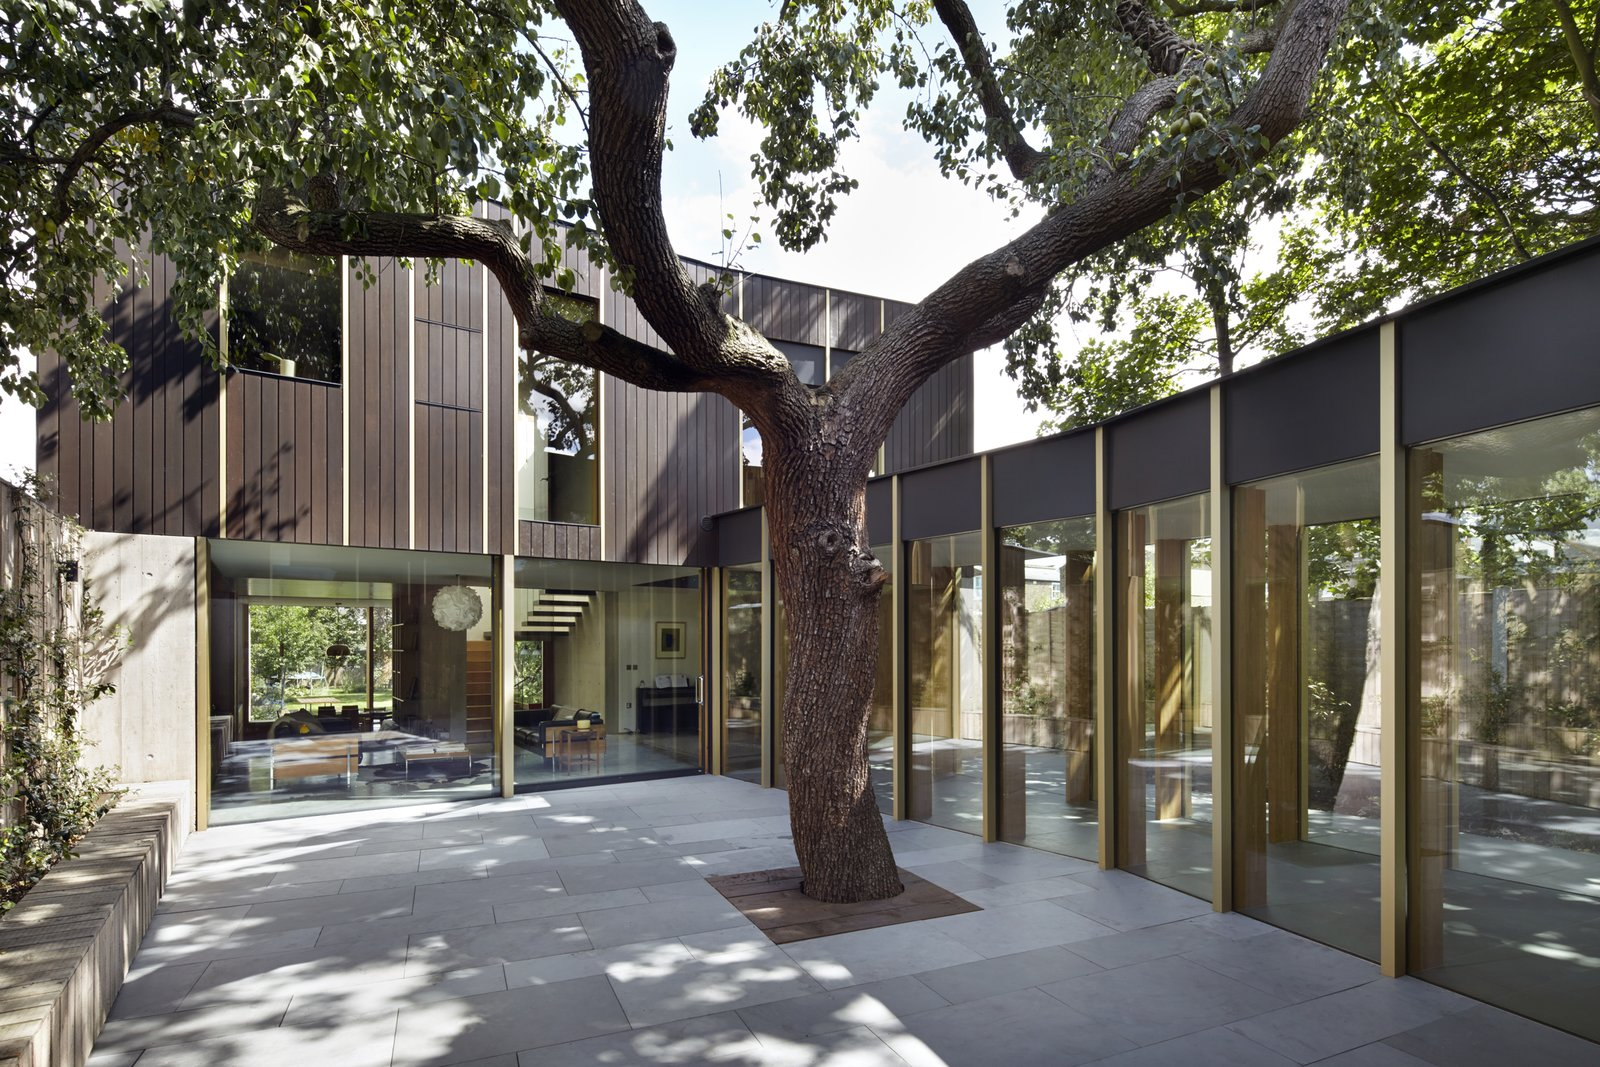 Photo 1 of 9 in This Modern Courtyard Home Celebrates a 100-Year-Old Tree